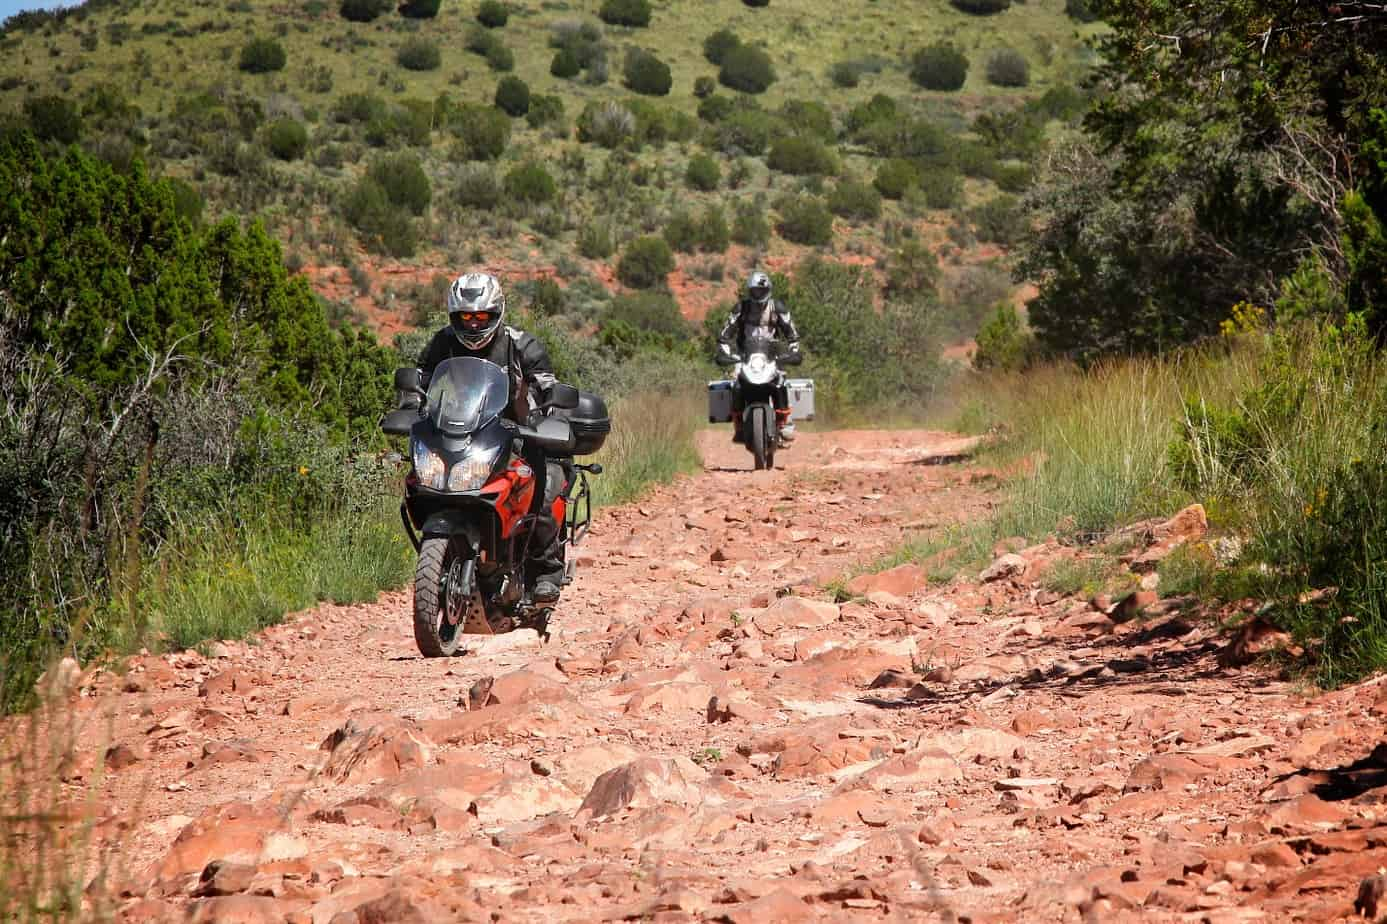 New Adventure Rider: Selecting a Motorcycle